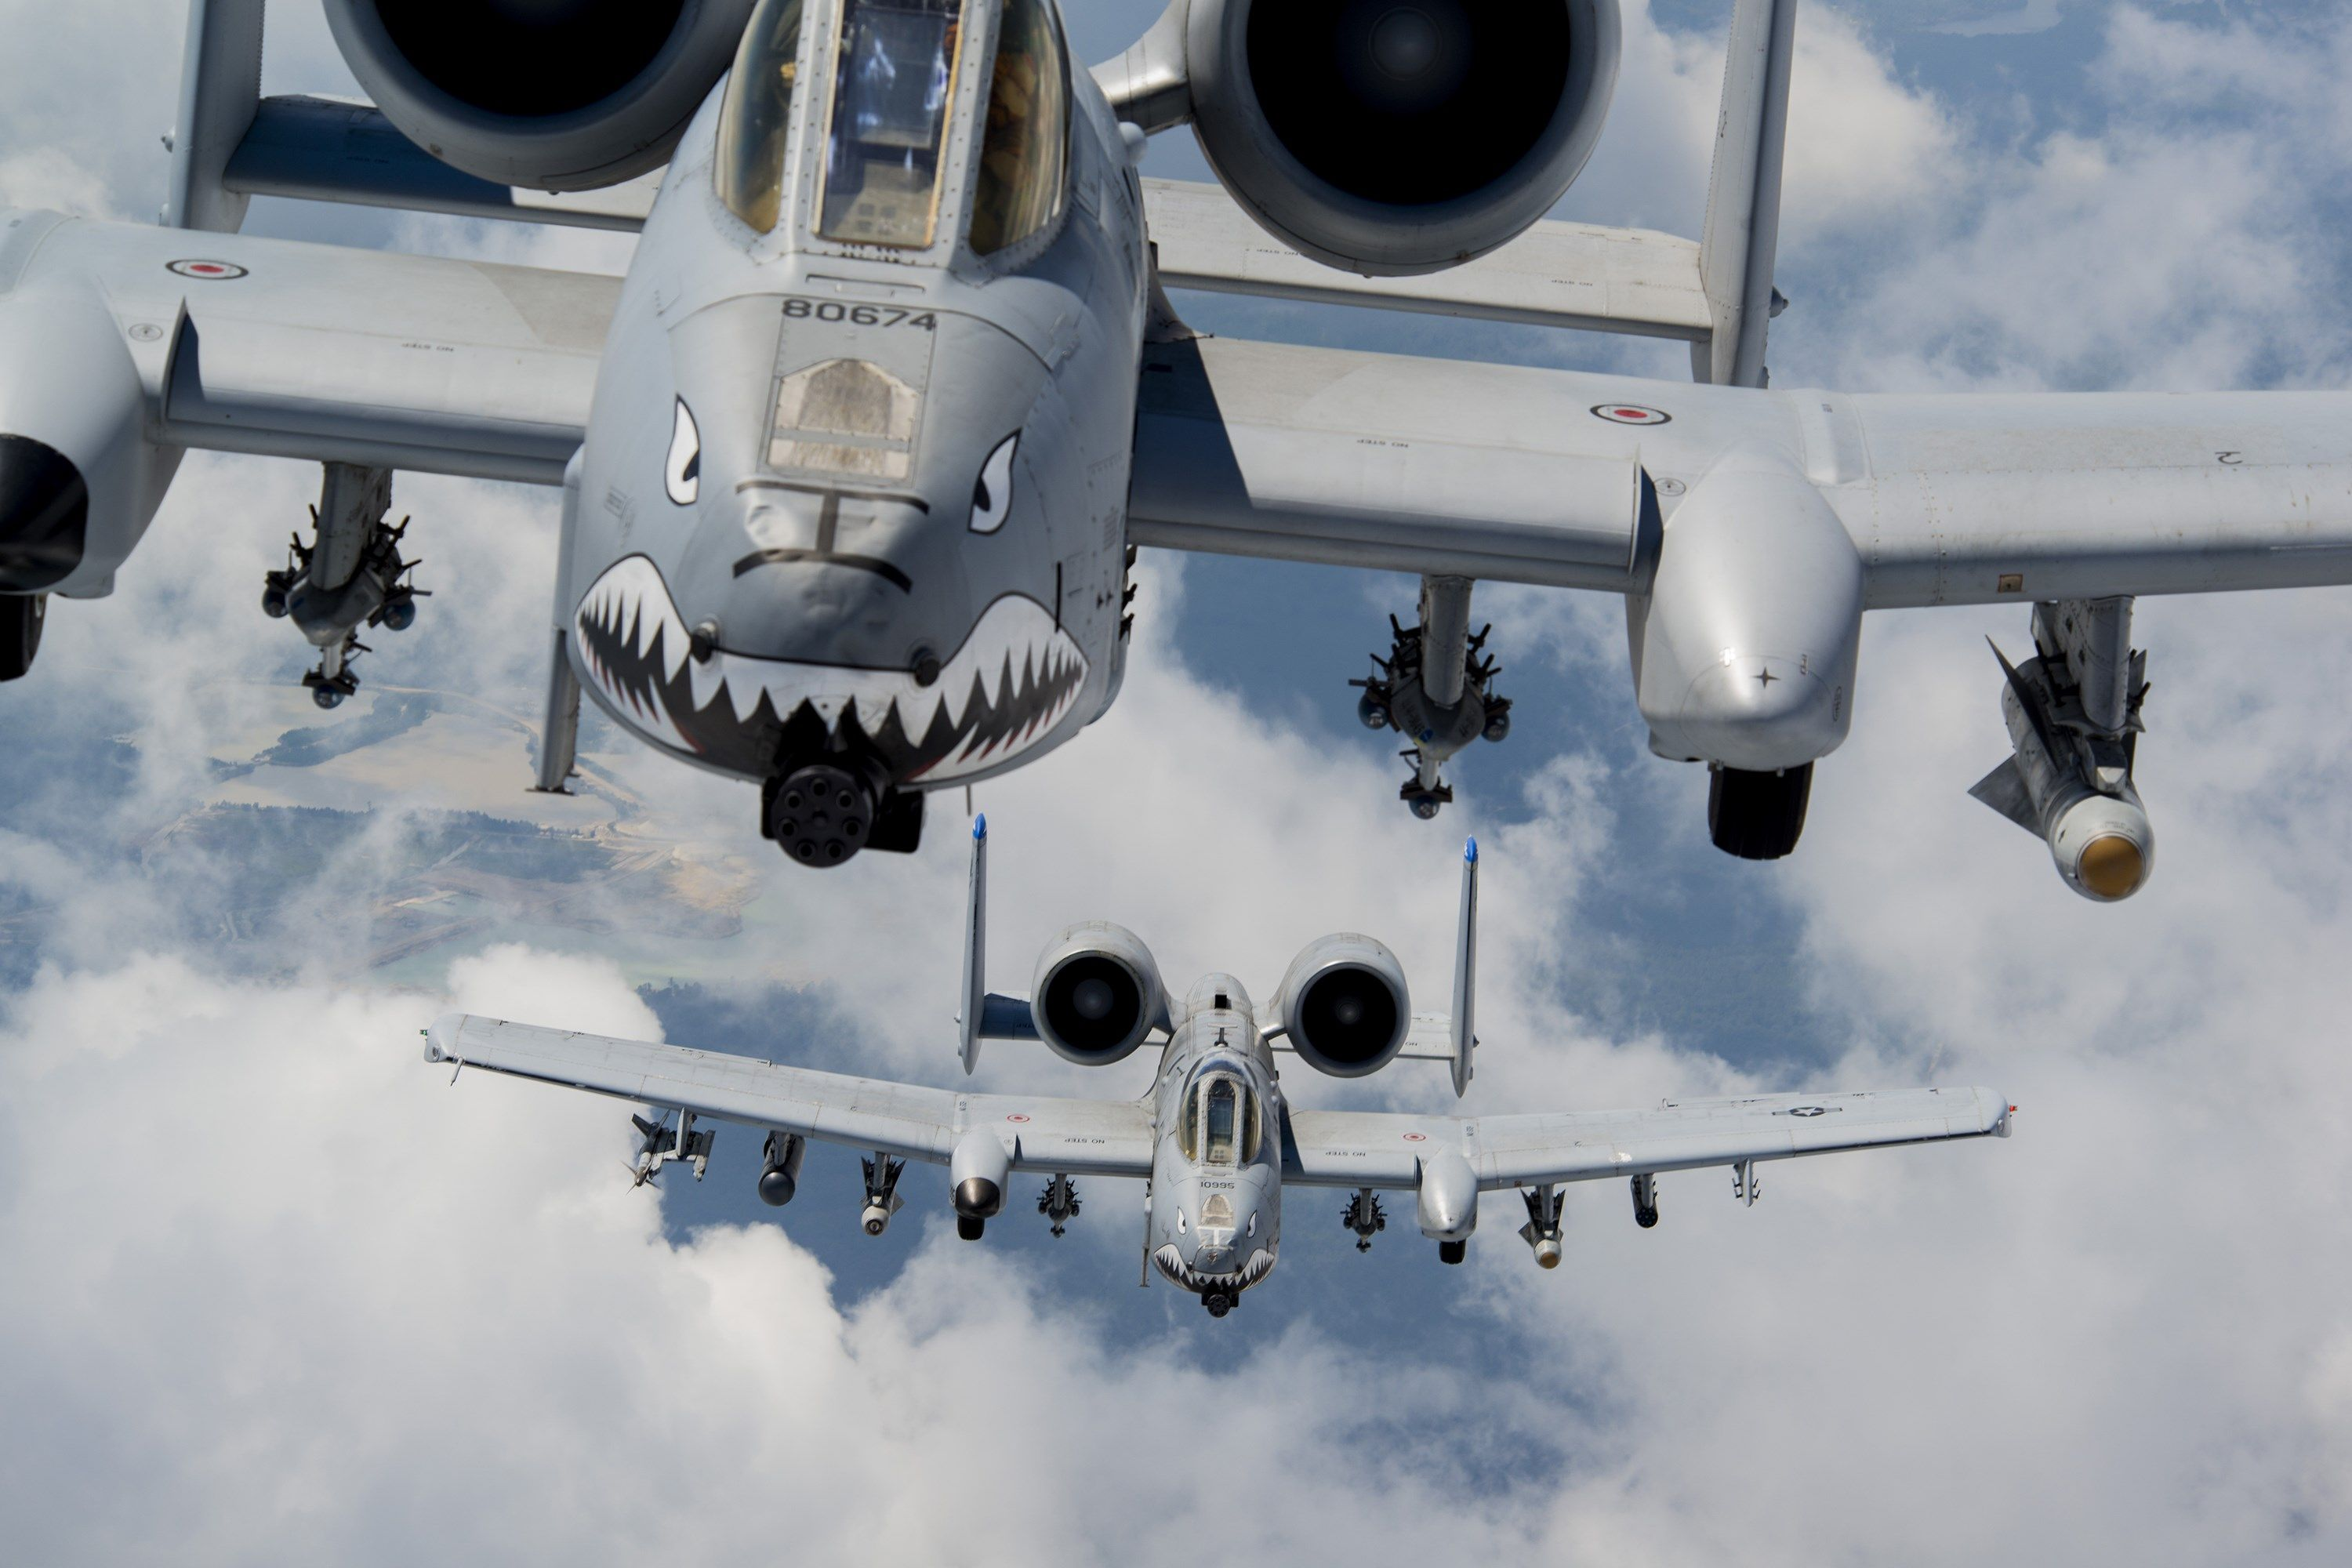 Pin By Tonya Norris Lane On Aircraft And Navy Ships Fighter Jets Aircraft Fighter